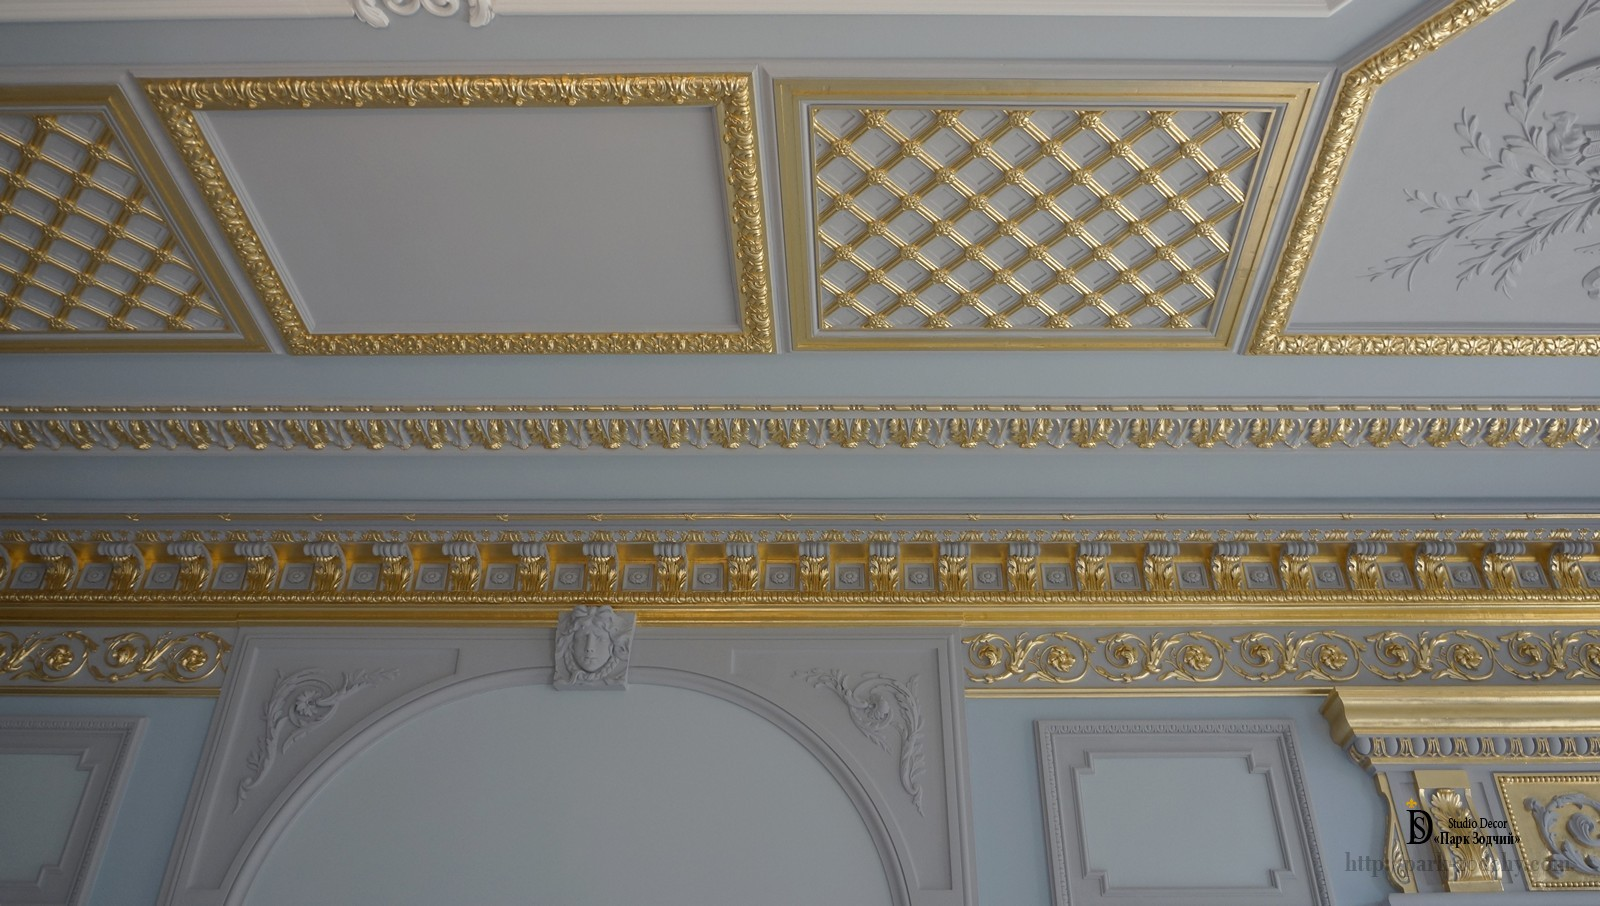 Gilding and ceiling stucco work